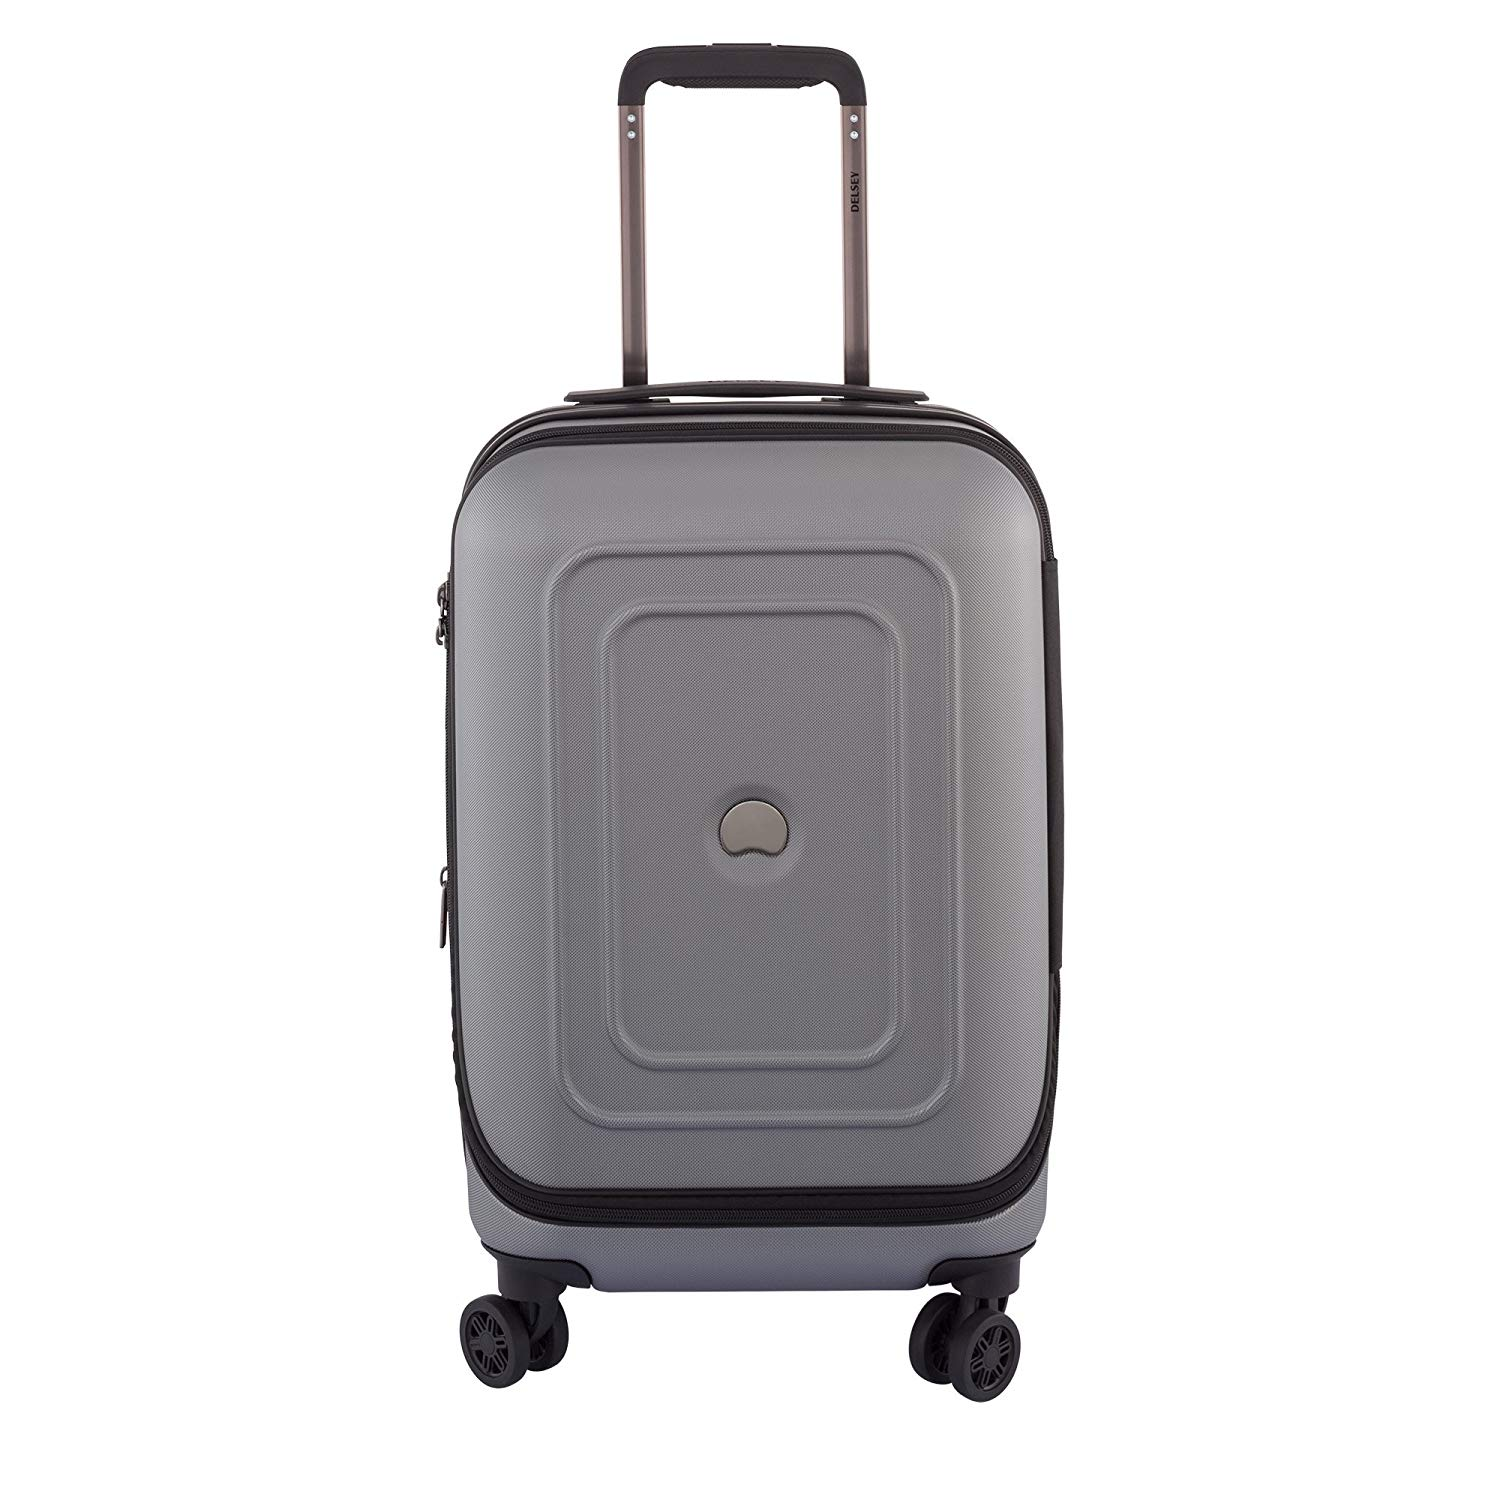 DELSEY Paris Luggage Cruise Lite Hardside